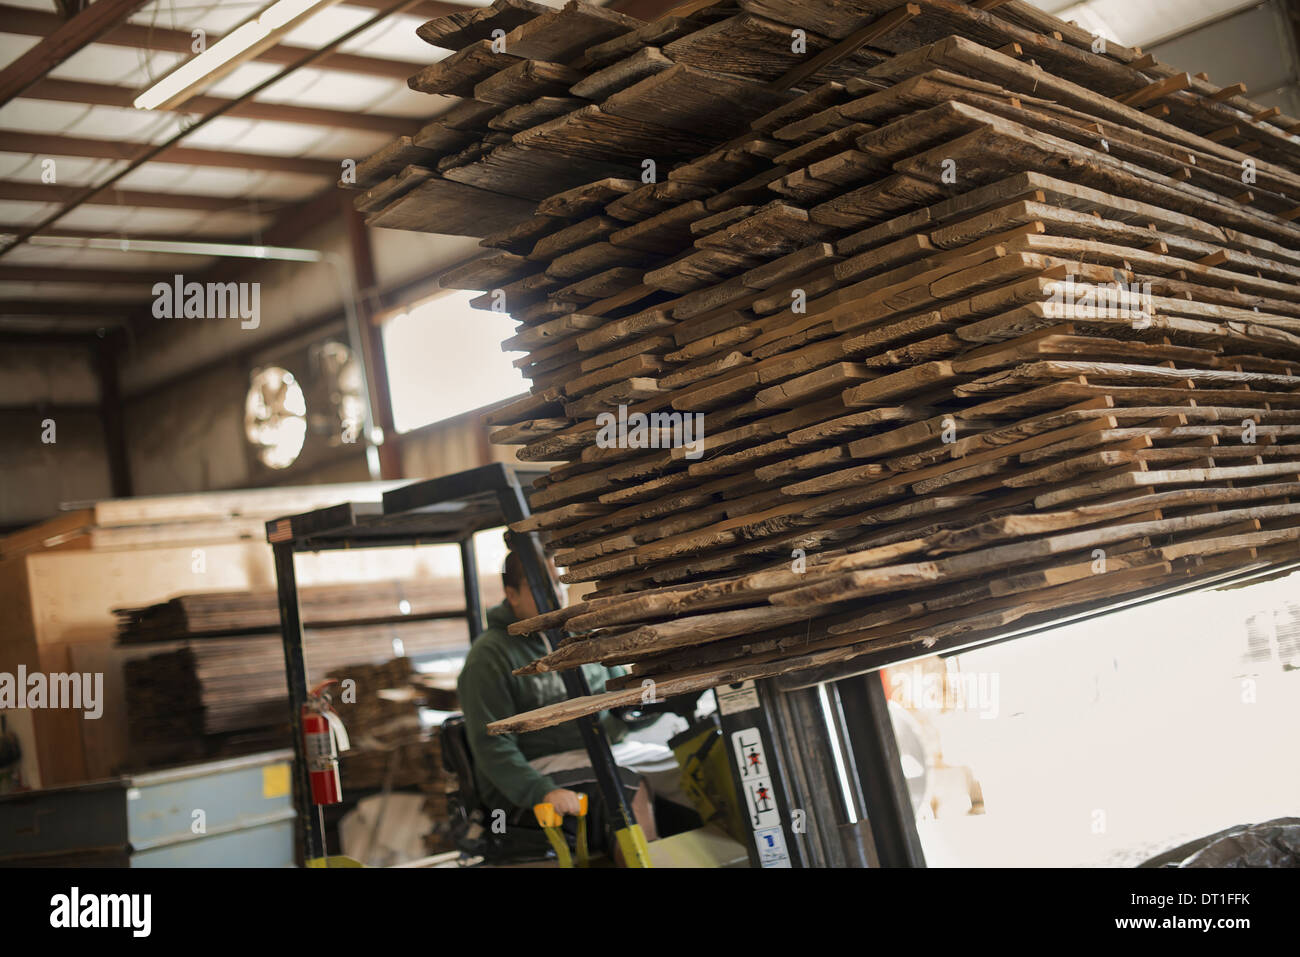 A heap of recycled reclaimed timber planks of wood being moved on a forklift truck reclamation in a timber yard - Stock Image